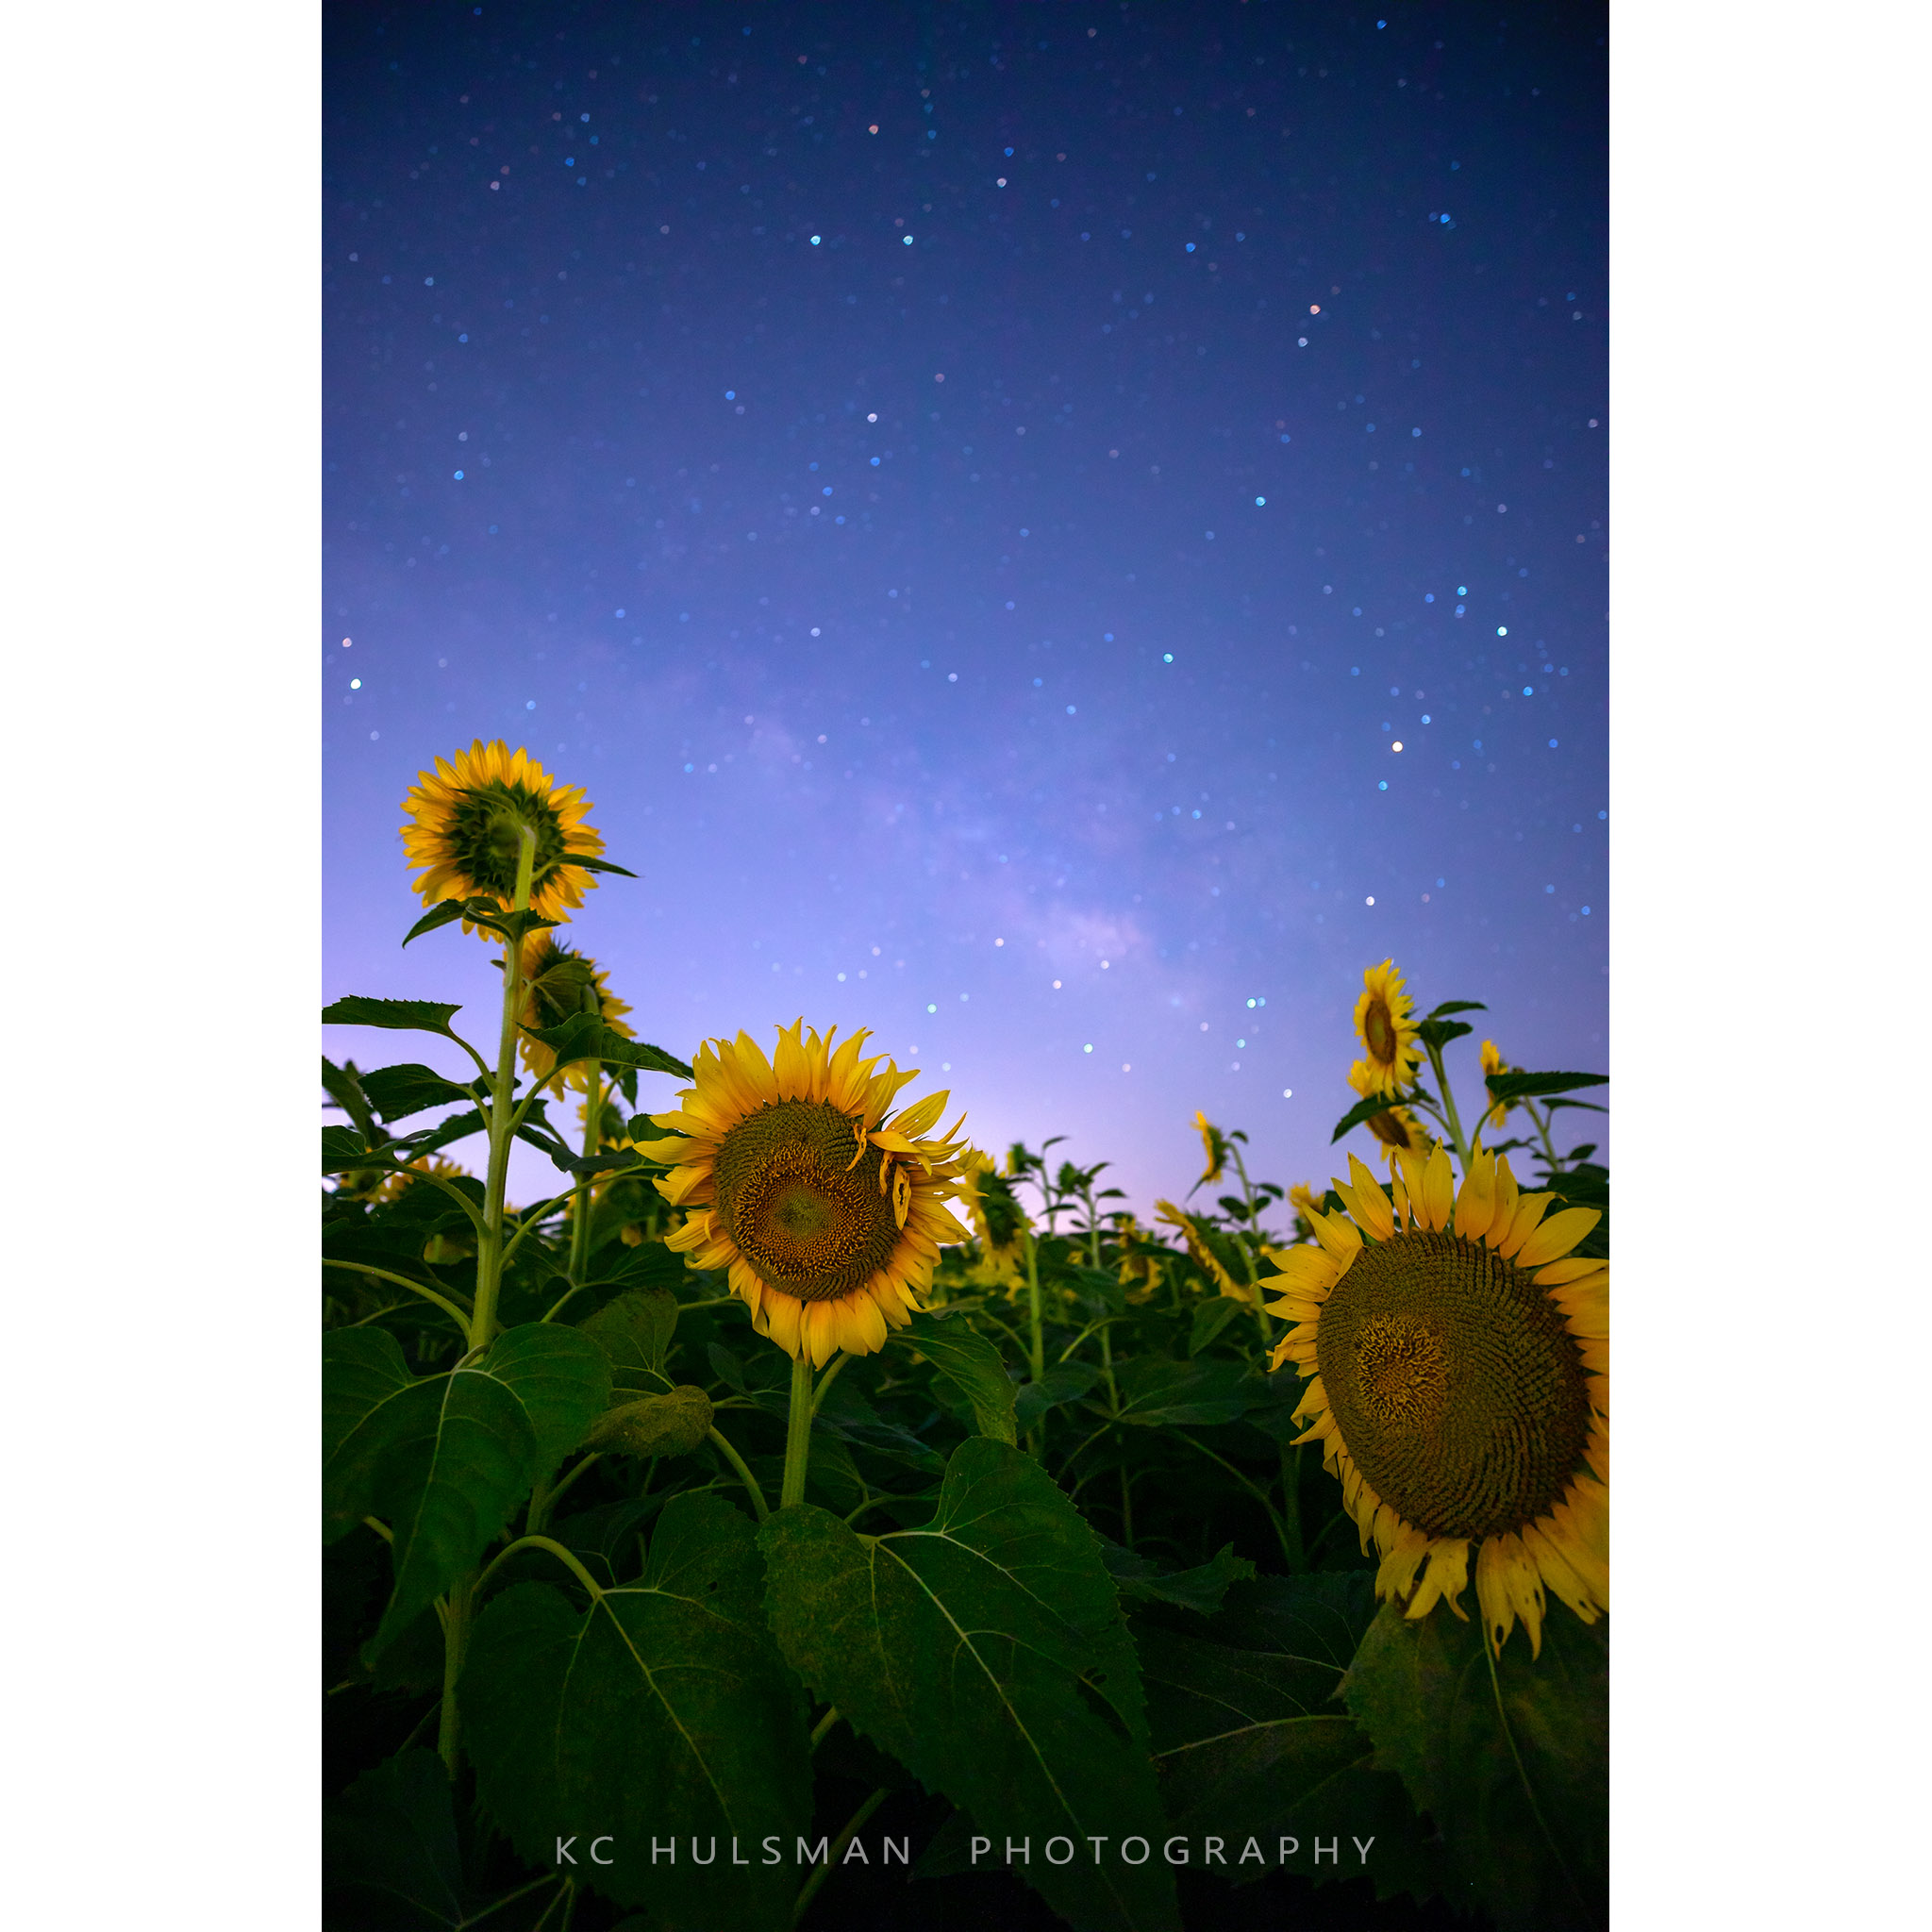 Photo of Starry Skies Over a Field of Sunflowers